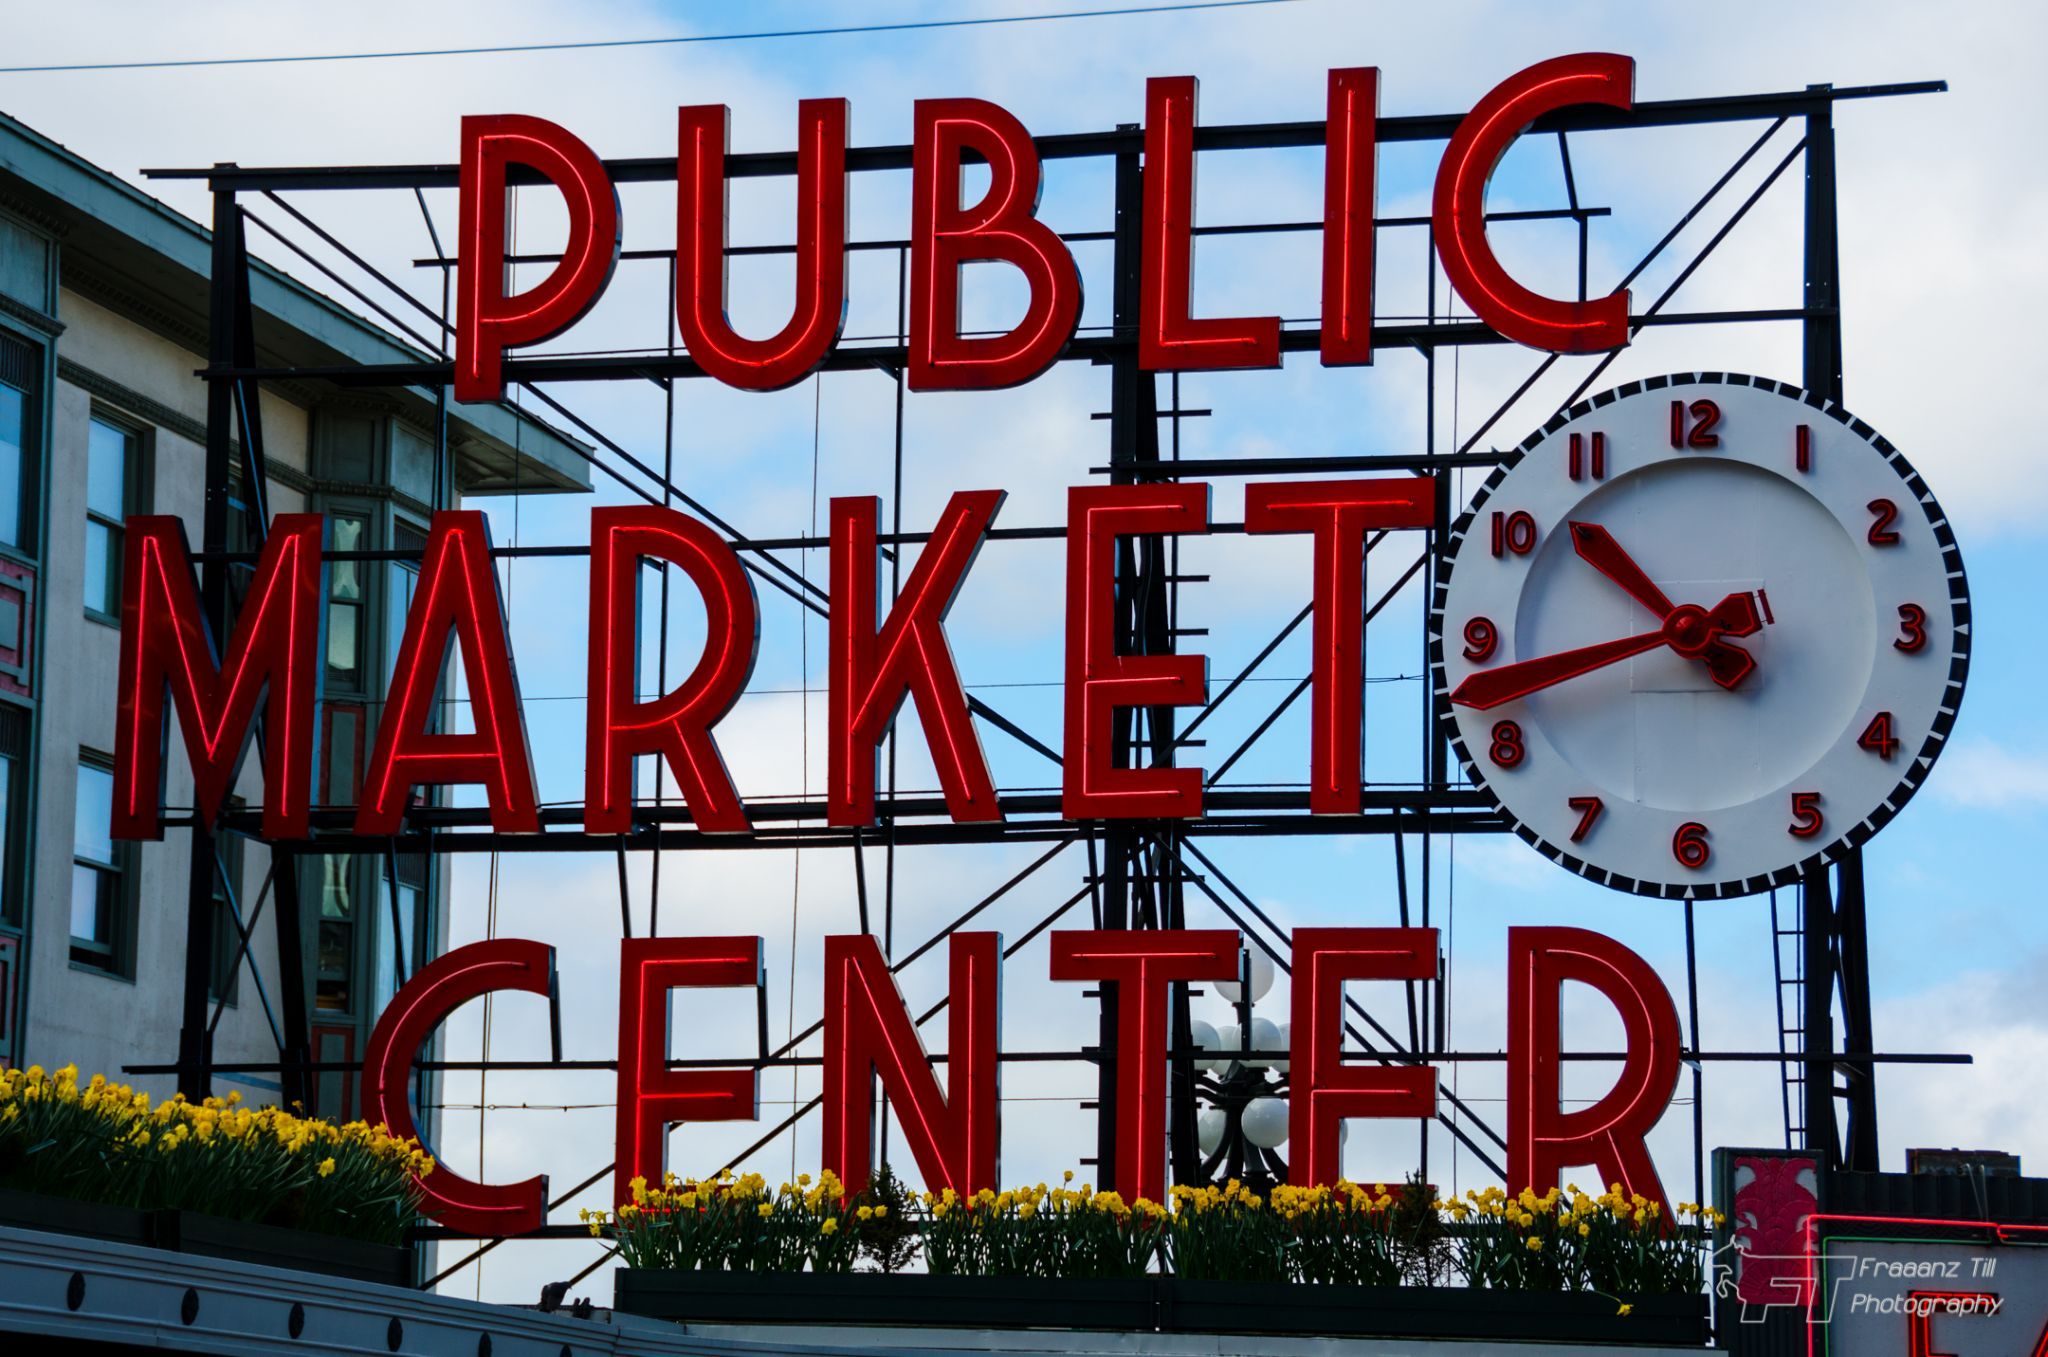 Seattle Public Market, USA